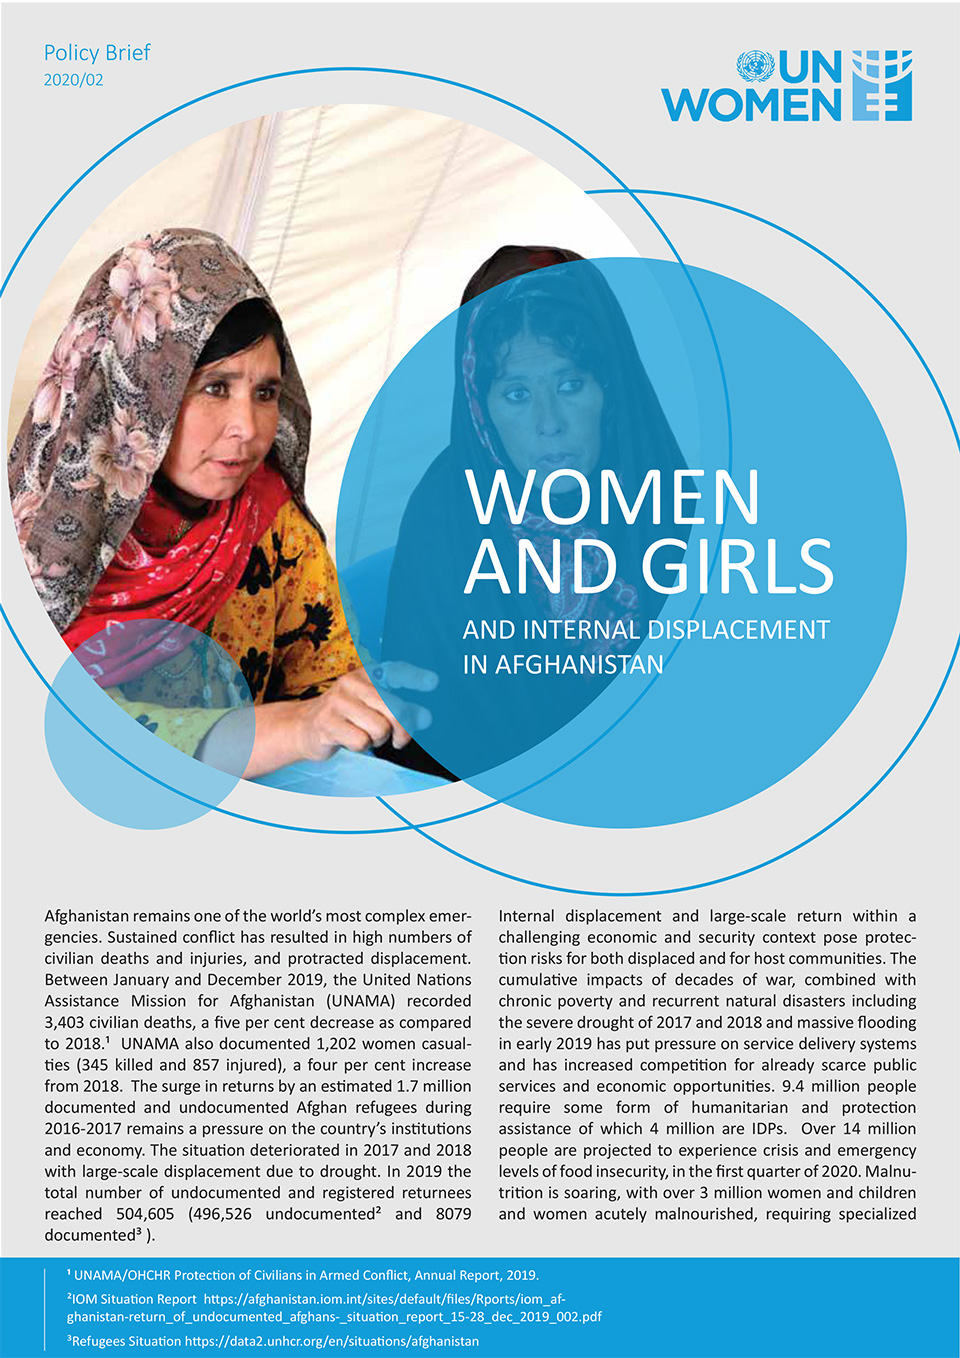 Policy Brief: Women and Girls and Internal Displacement in Afghanistan